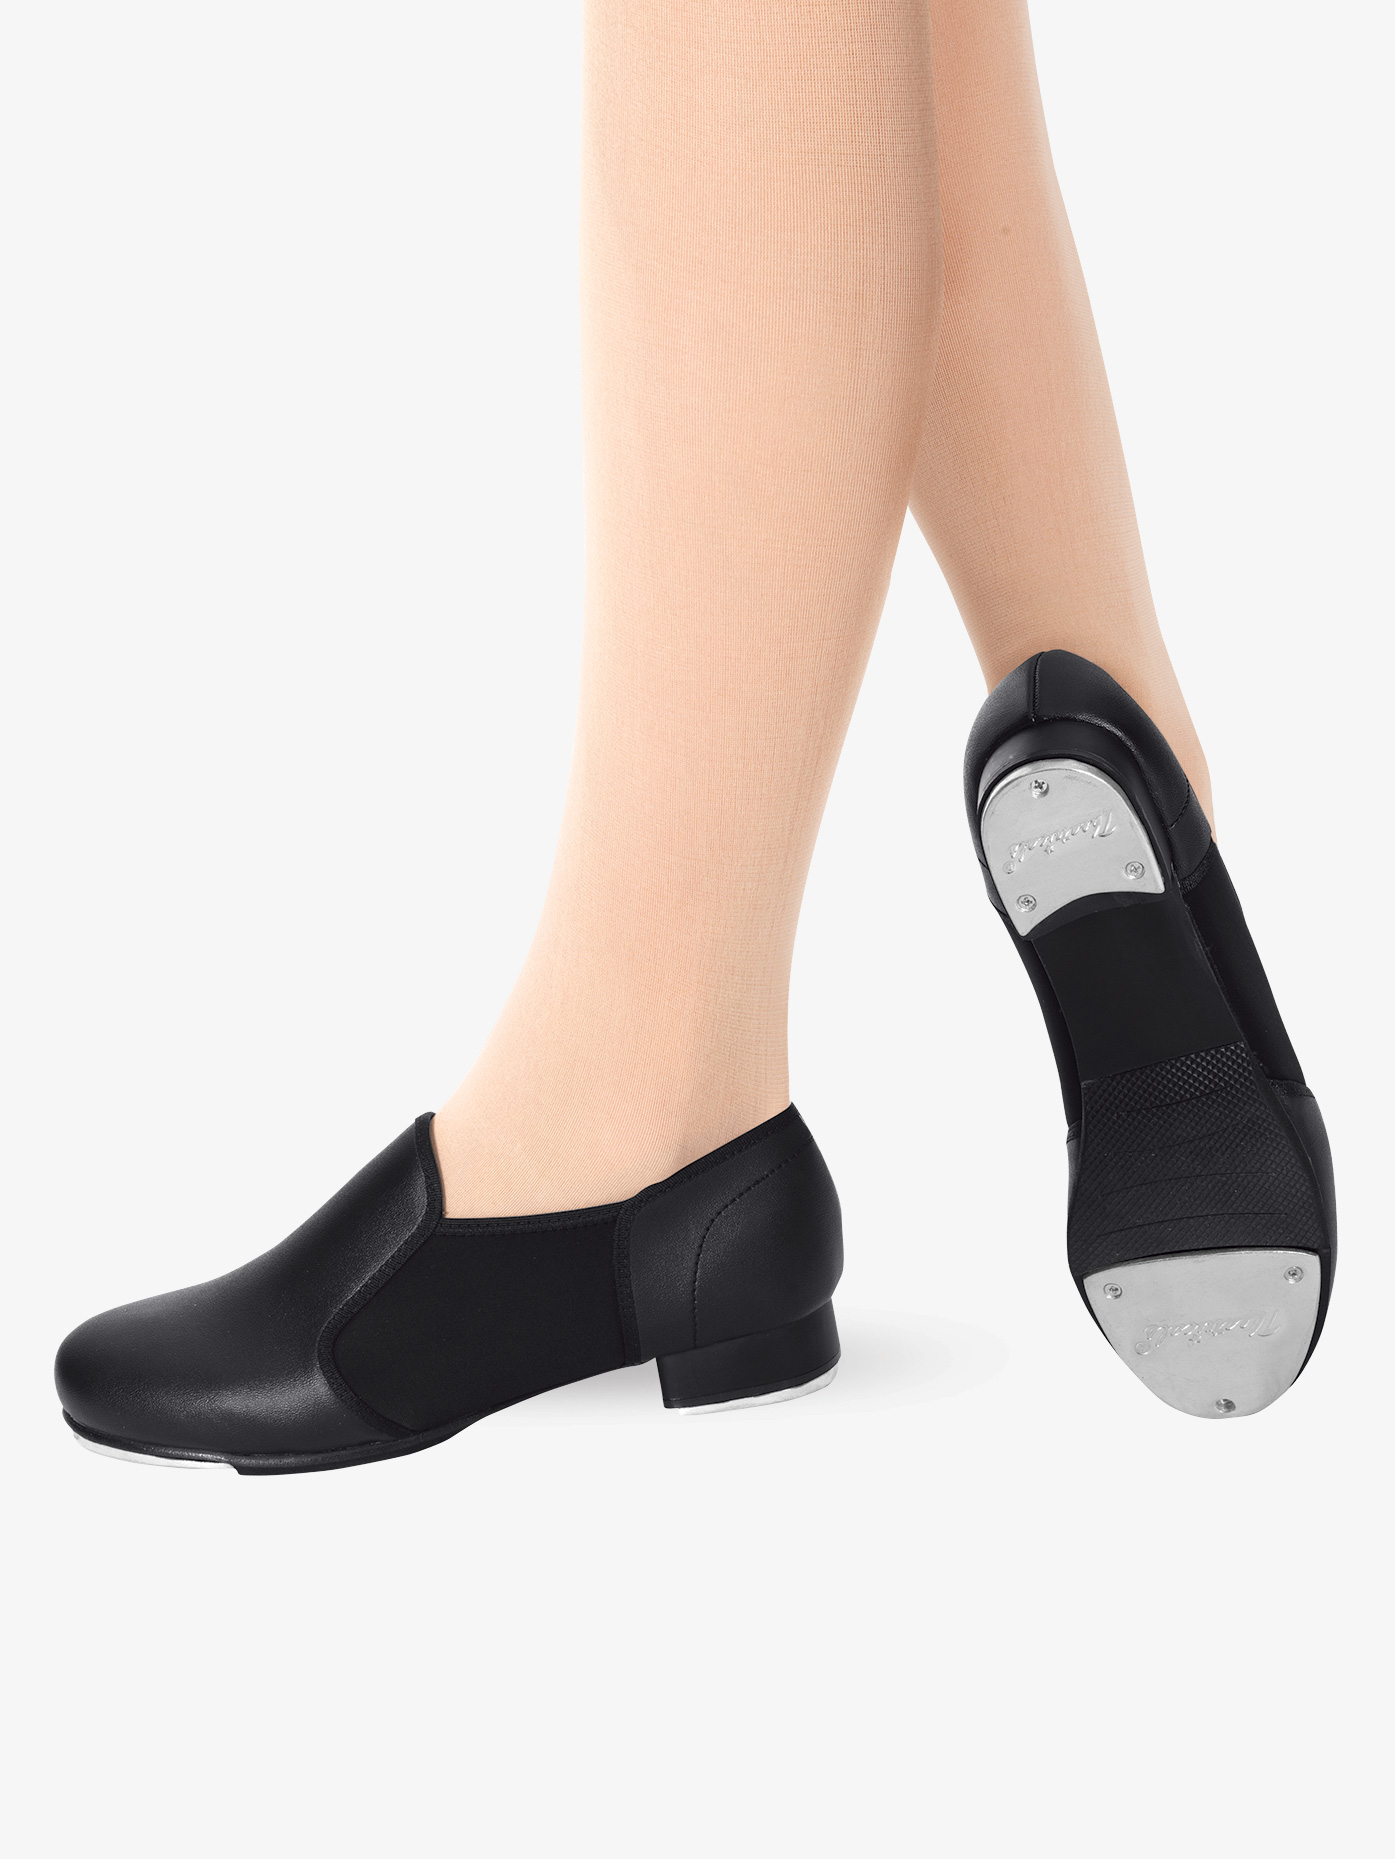 Theatricals Neoprene Insert Adult Tap Shoes T9100